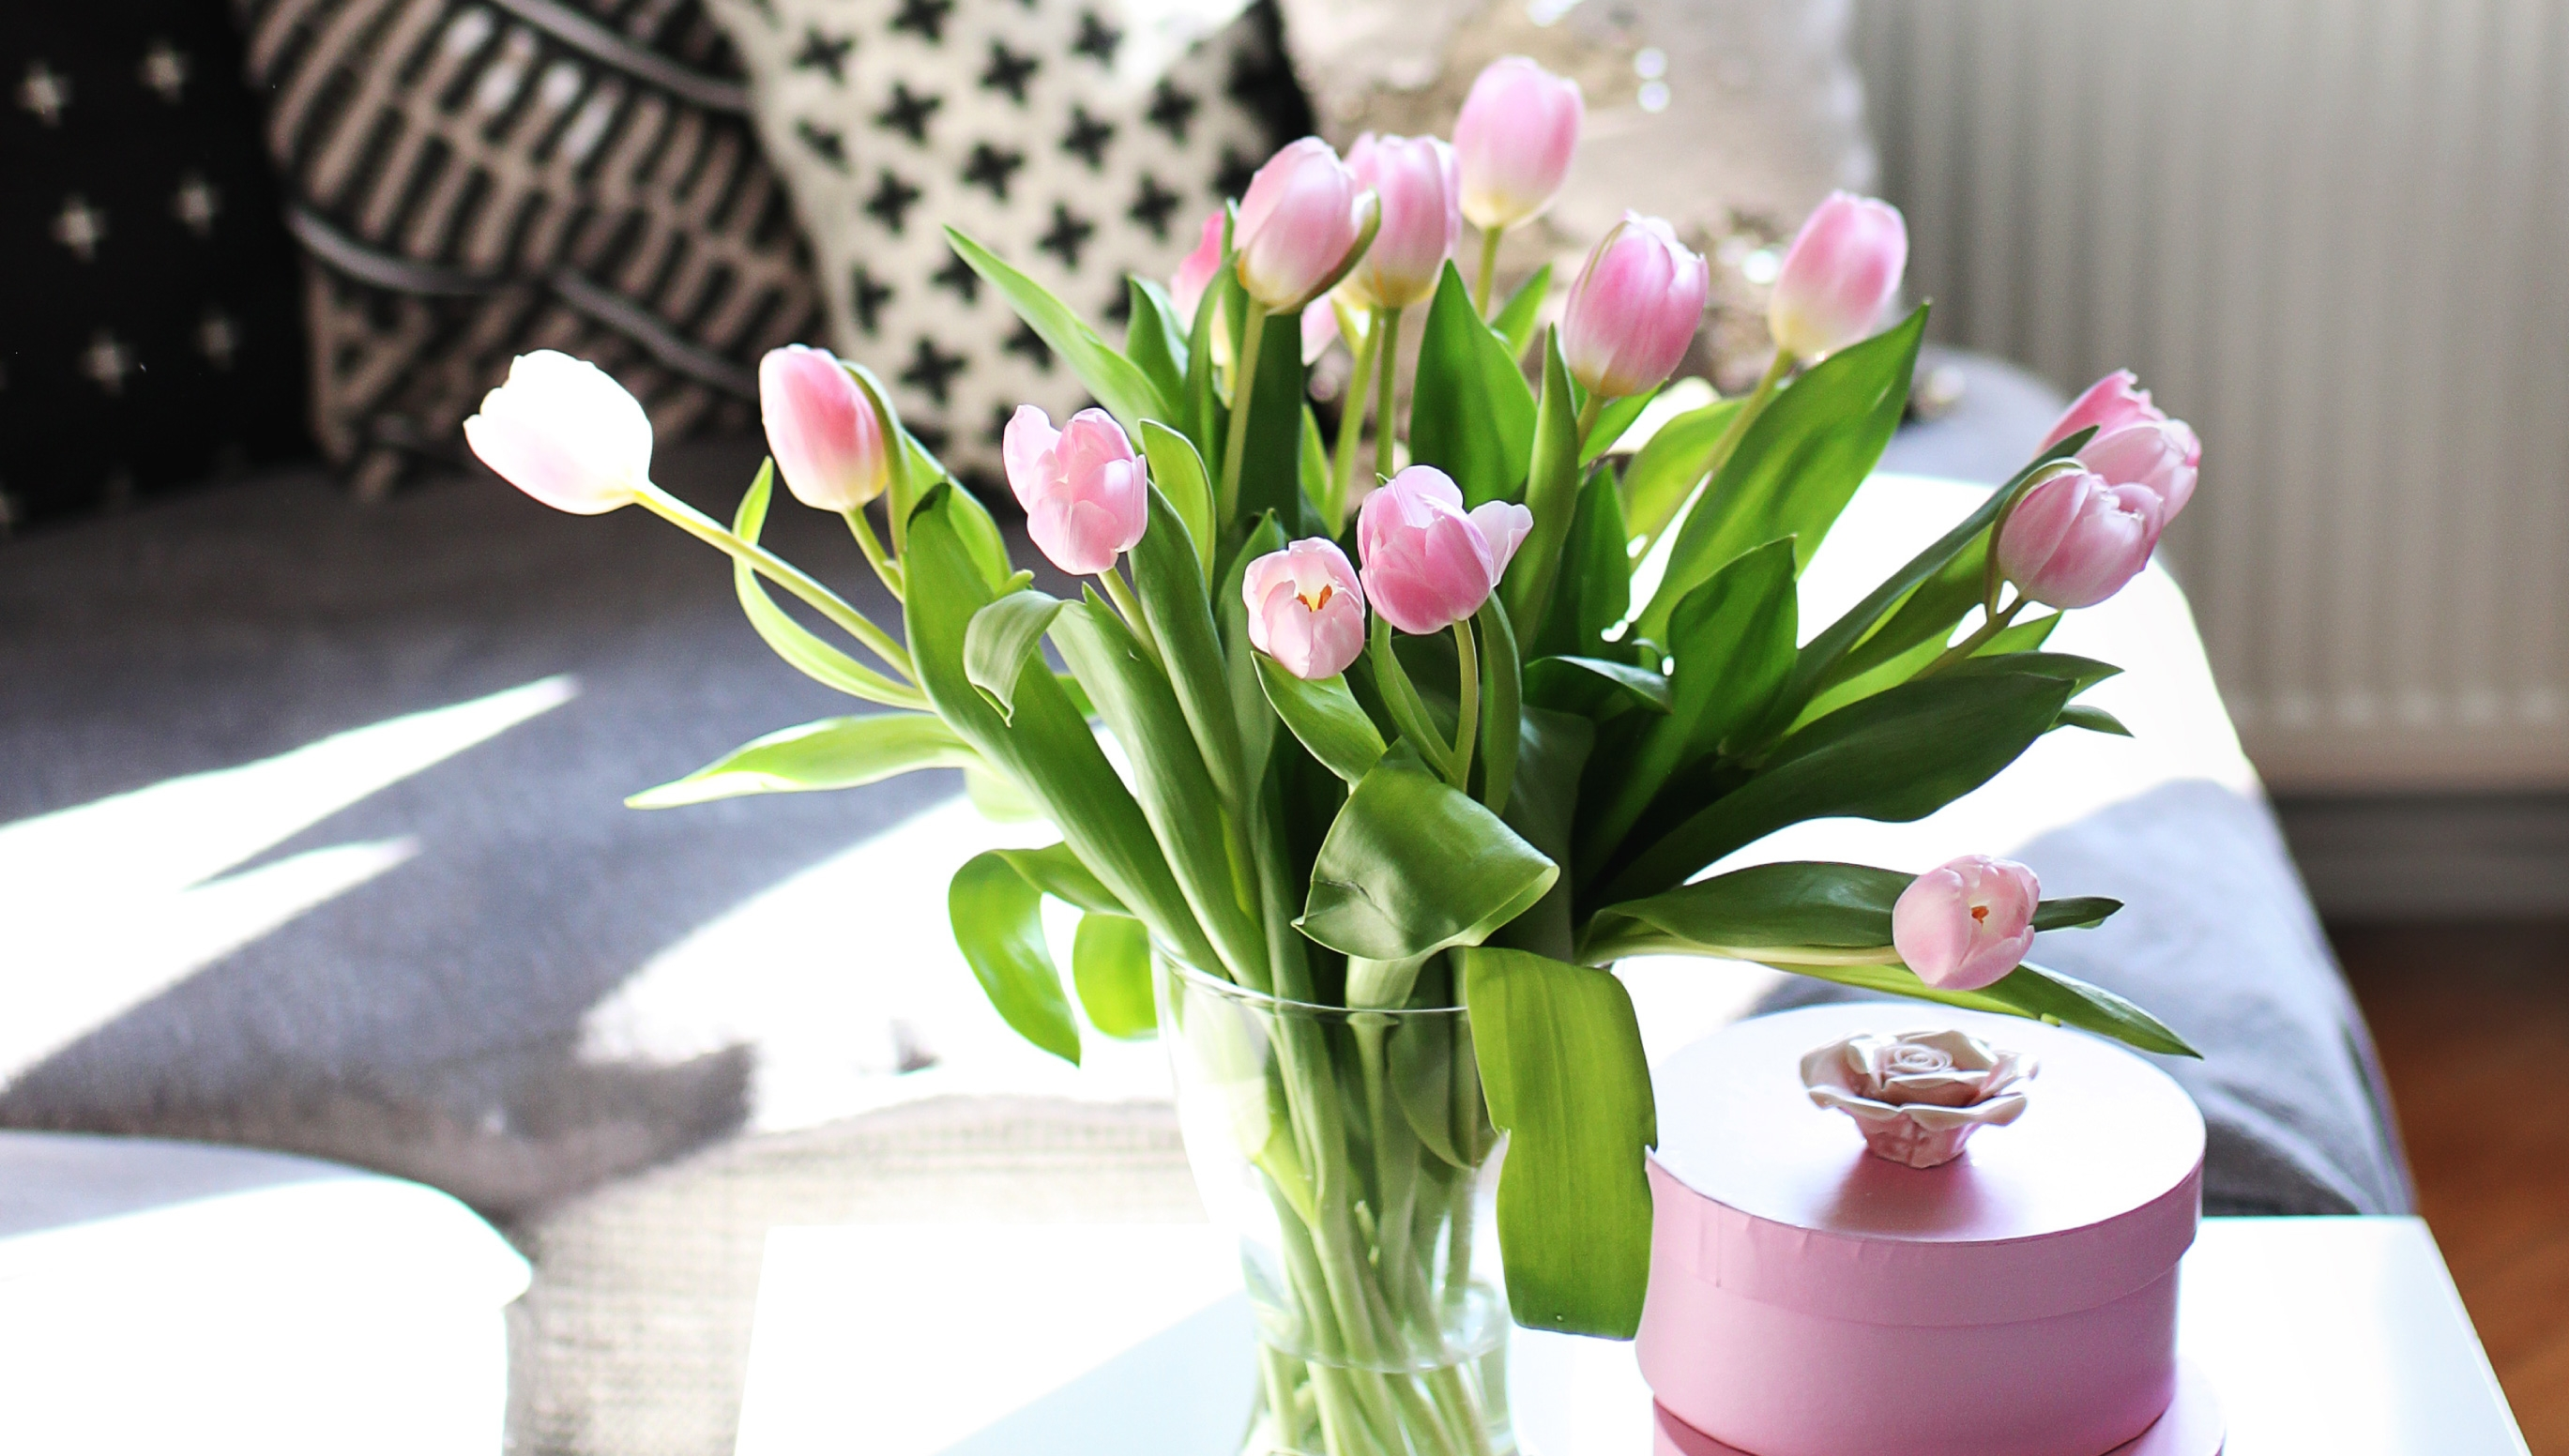 HTips to Choose the Right Flowers for Your Home